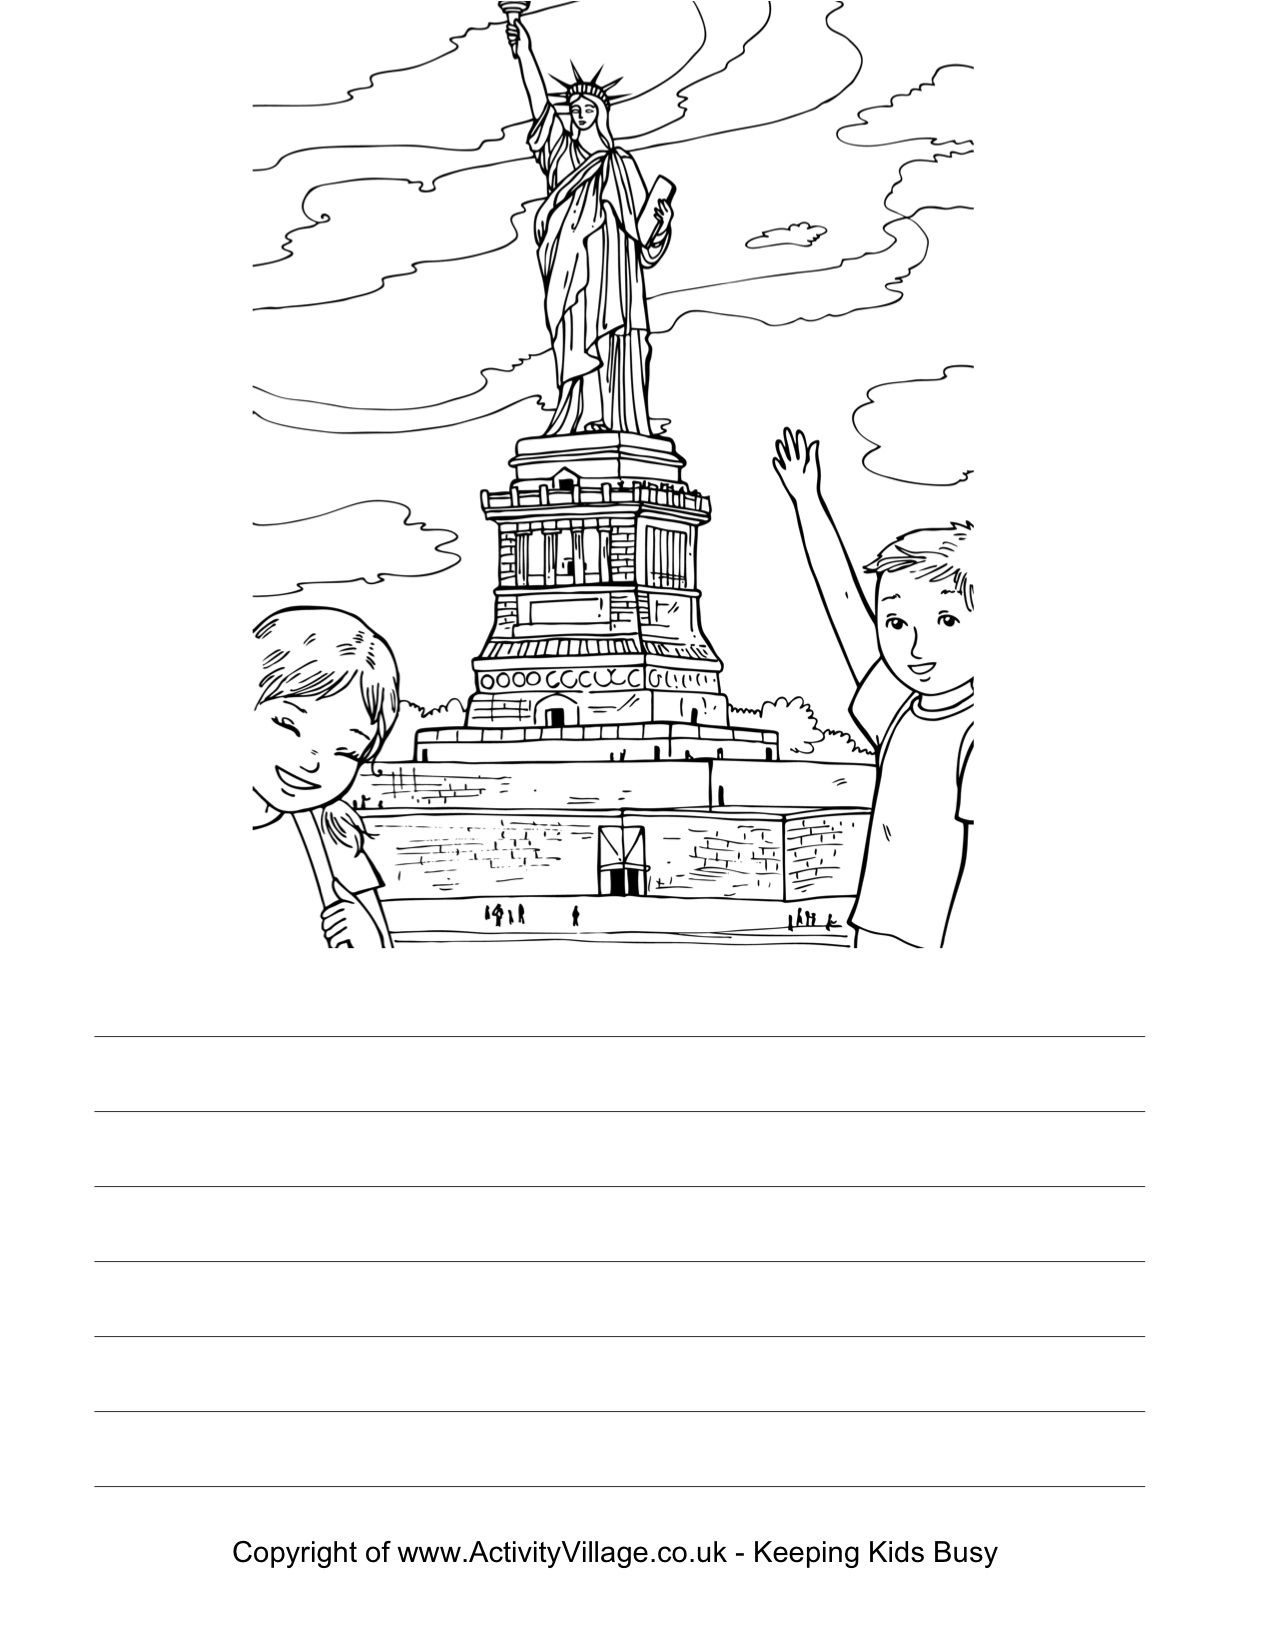 Print Color And Write A Story About Or Description Of New Yorks Most Famous Landmark